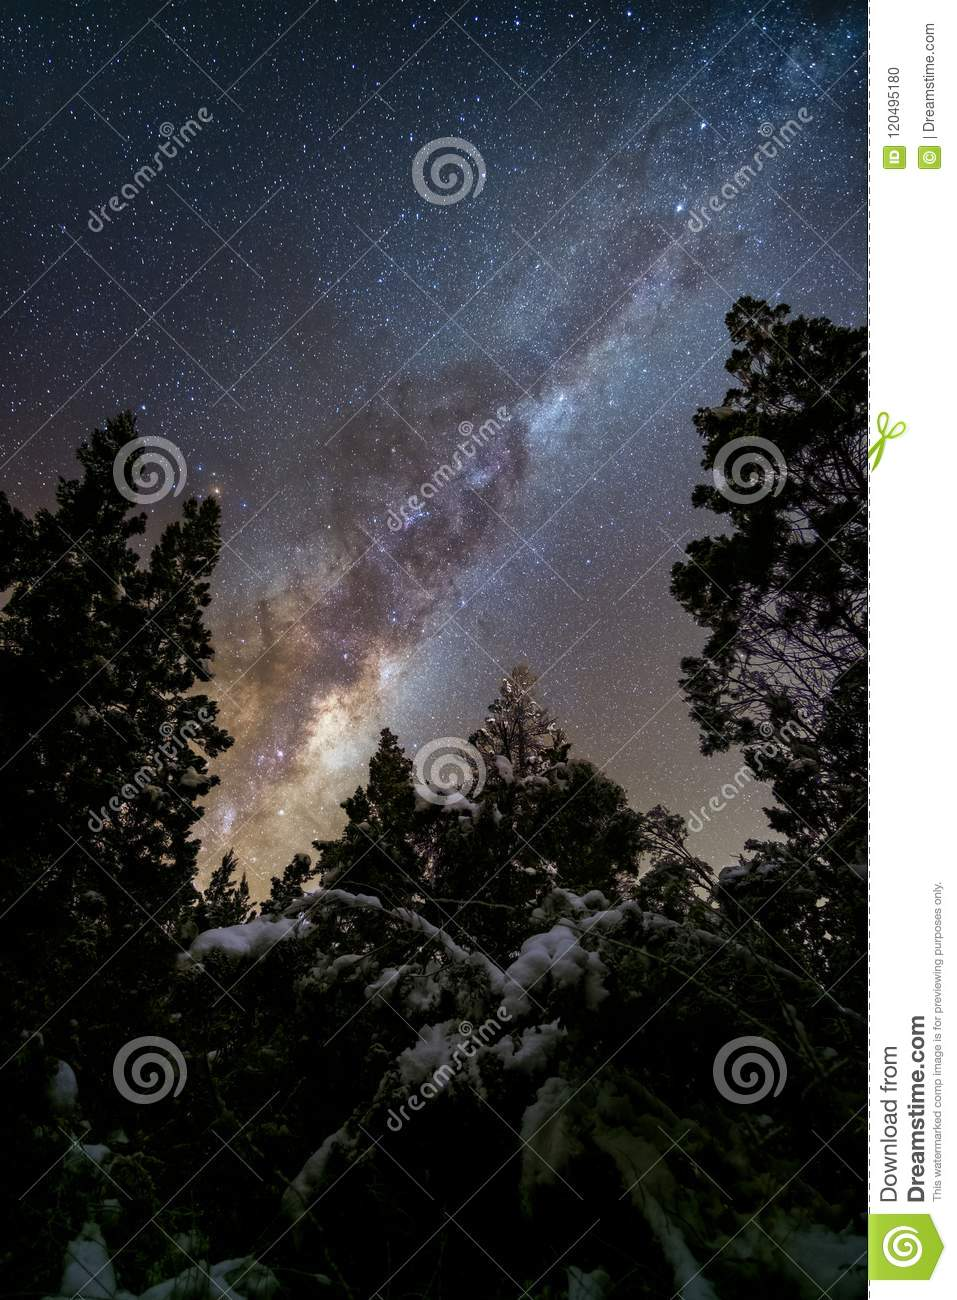 Milky way galaxy core between pine trees in dark winter forest with snow